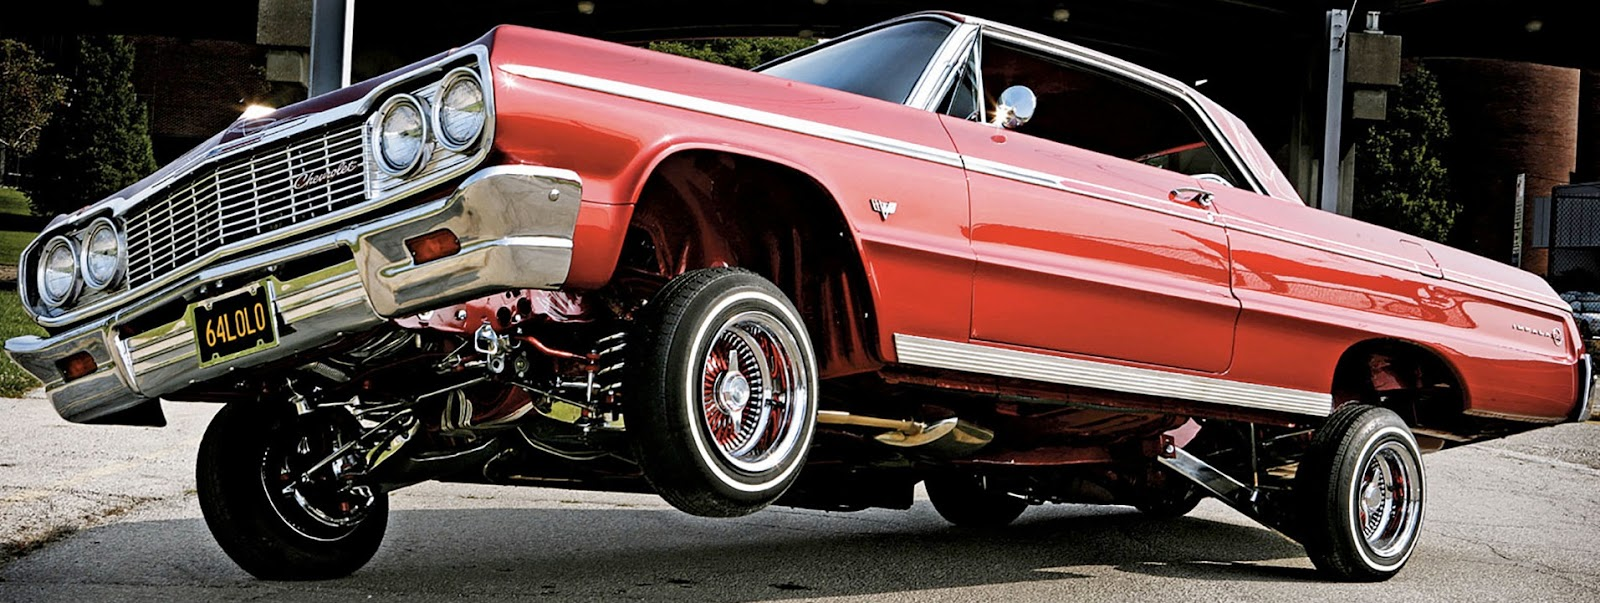 1600x603 - Lowrider Wallpapers 28